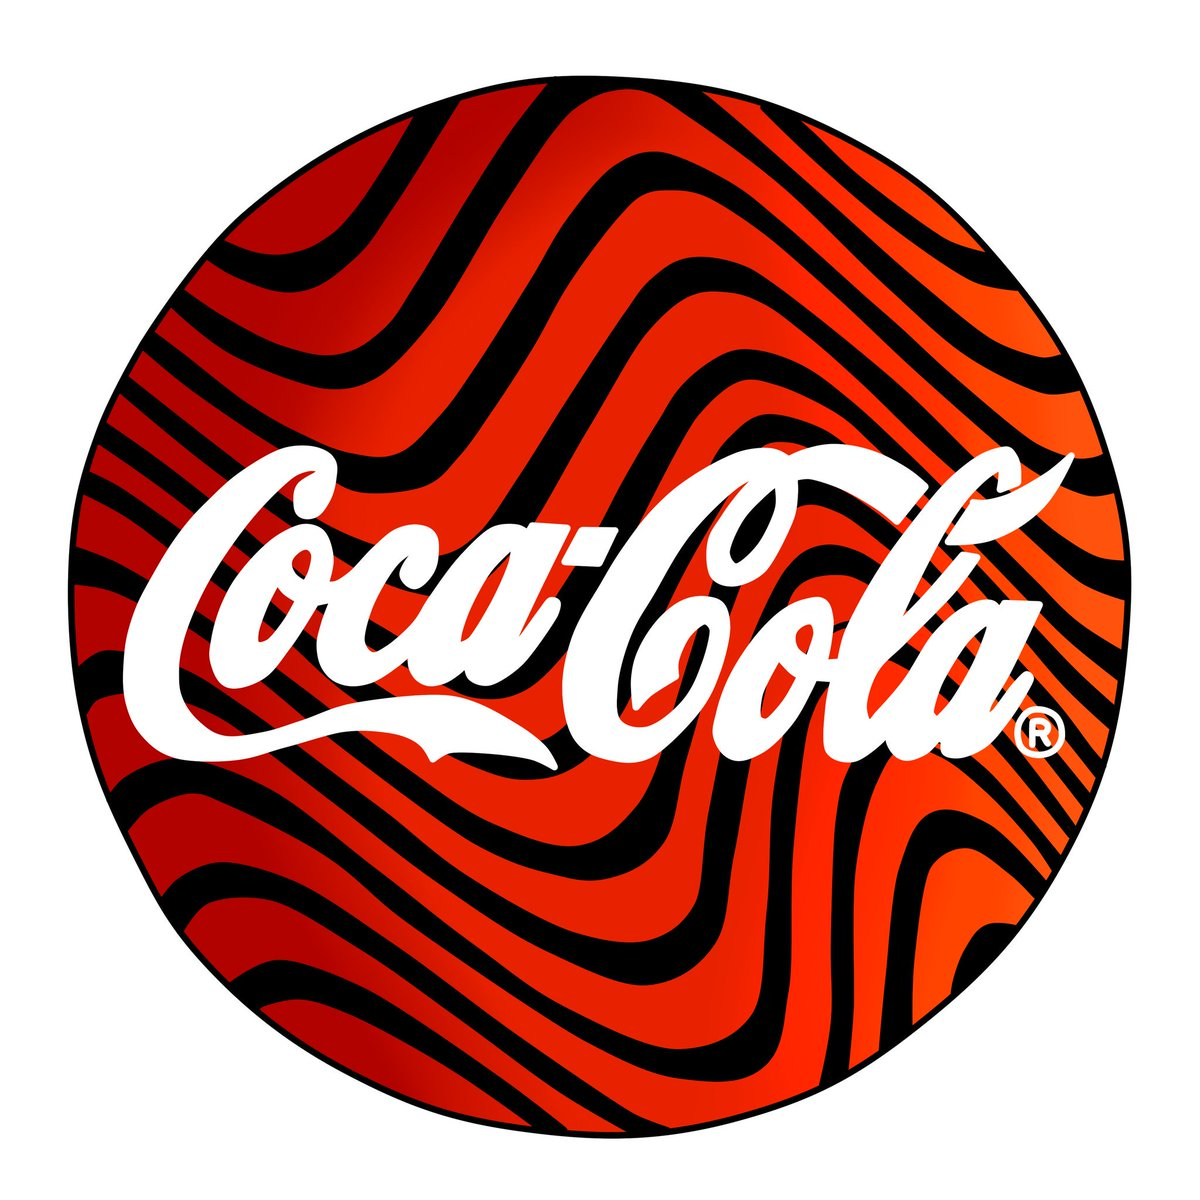 I&#39;ll will only drink @CocaCola if you sponsor @pewdiepie<br>http://pic.twitter.com/5loIb8r48f